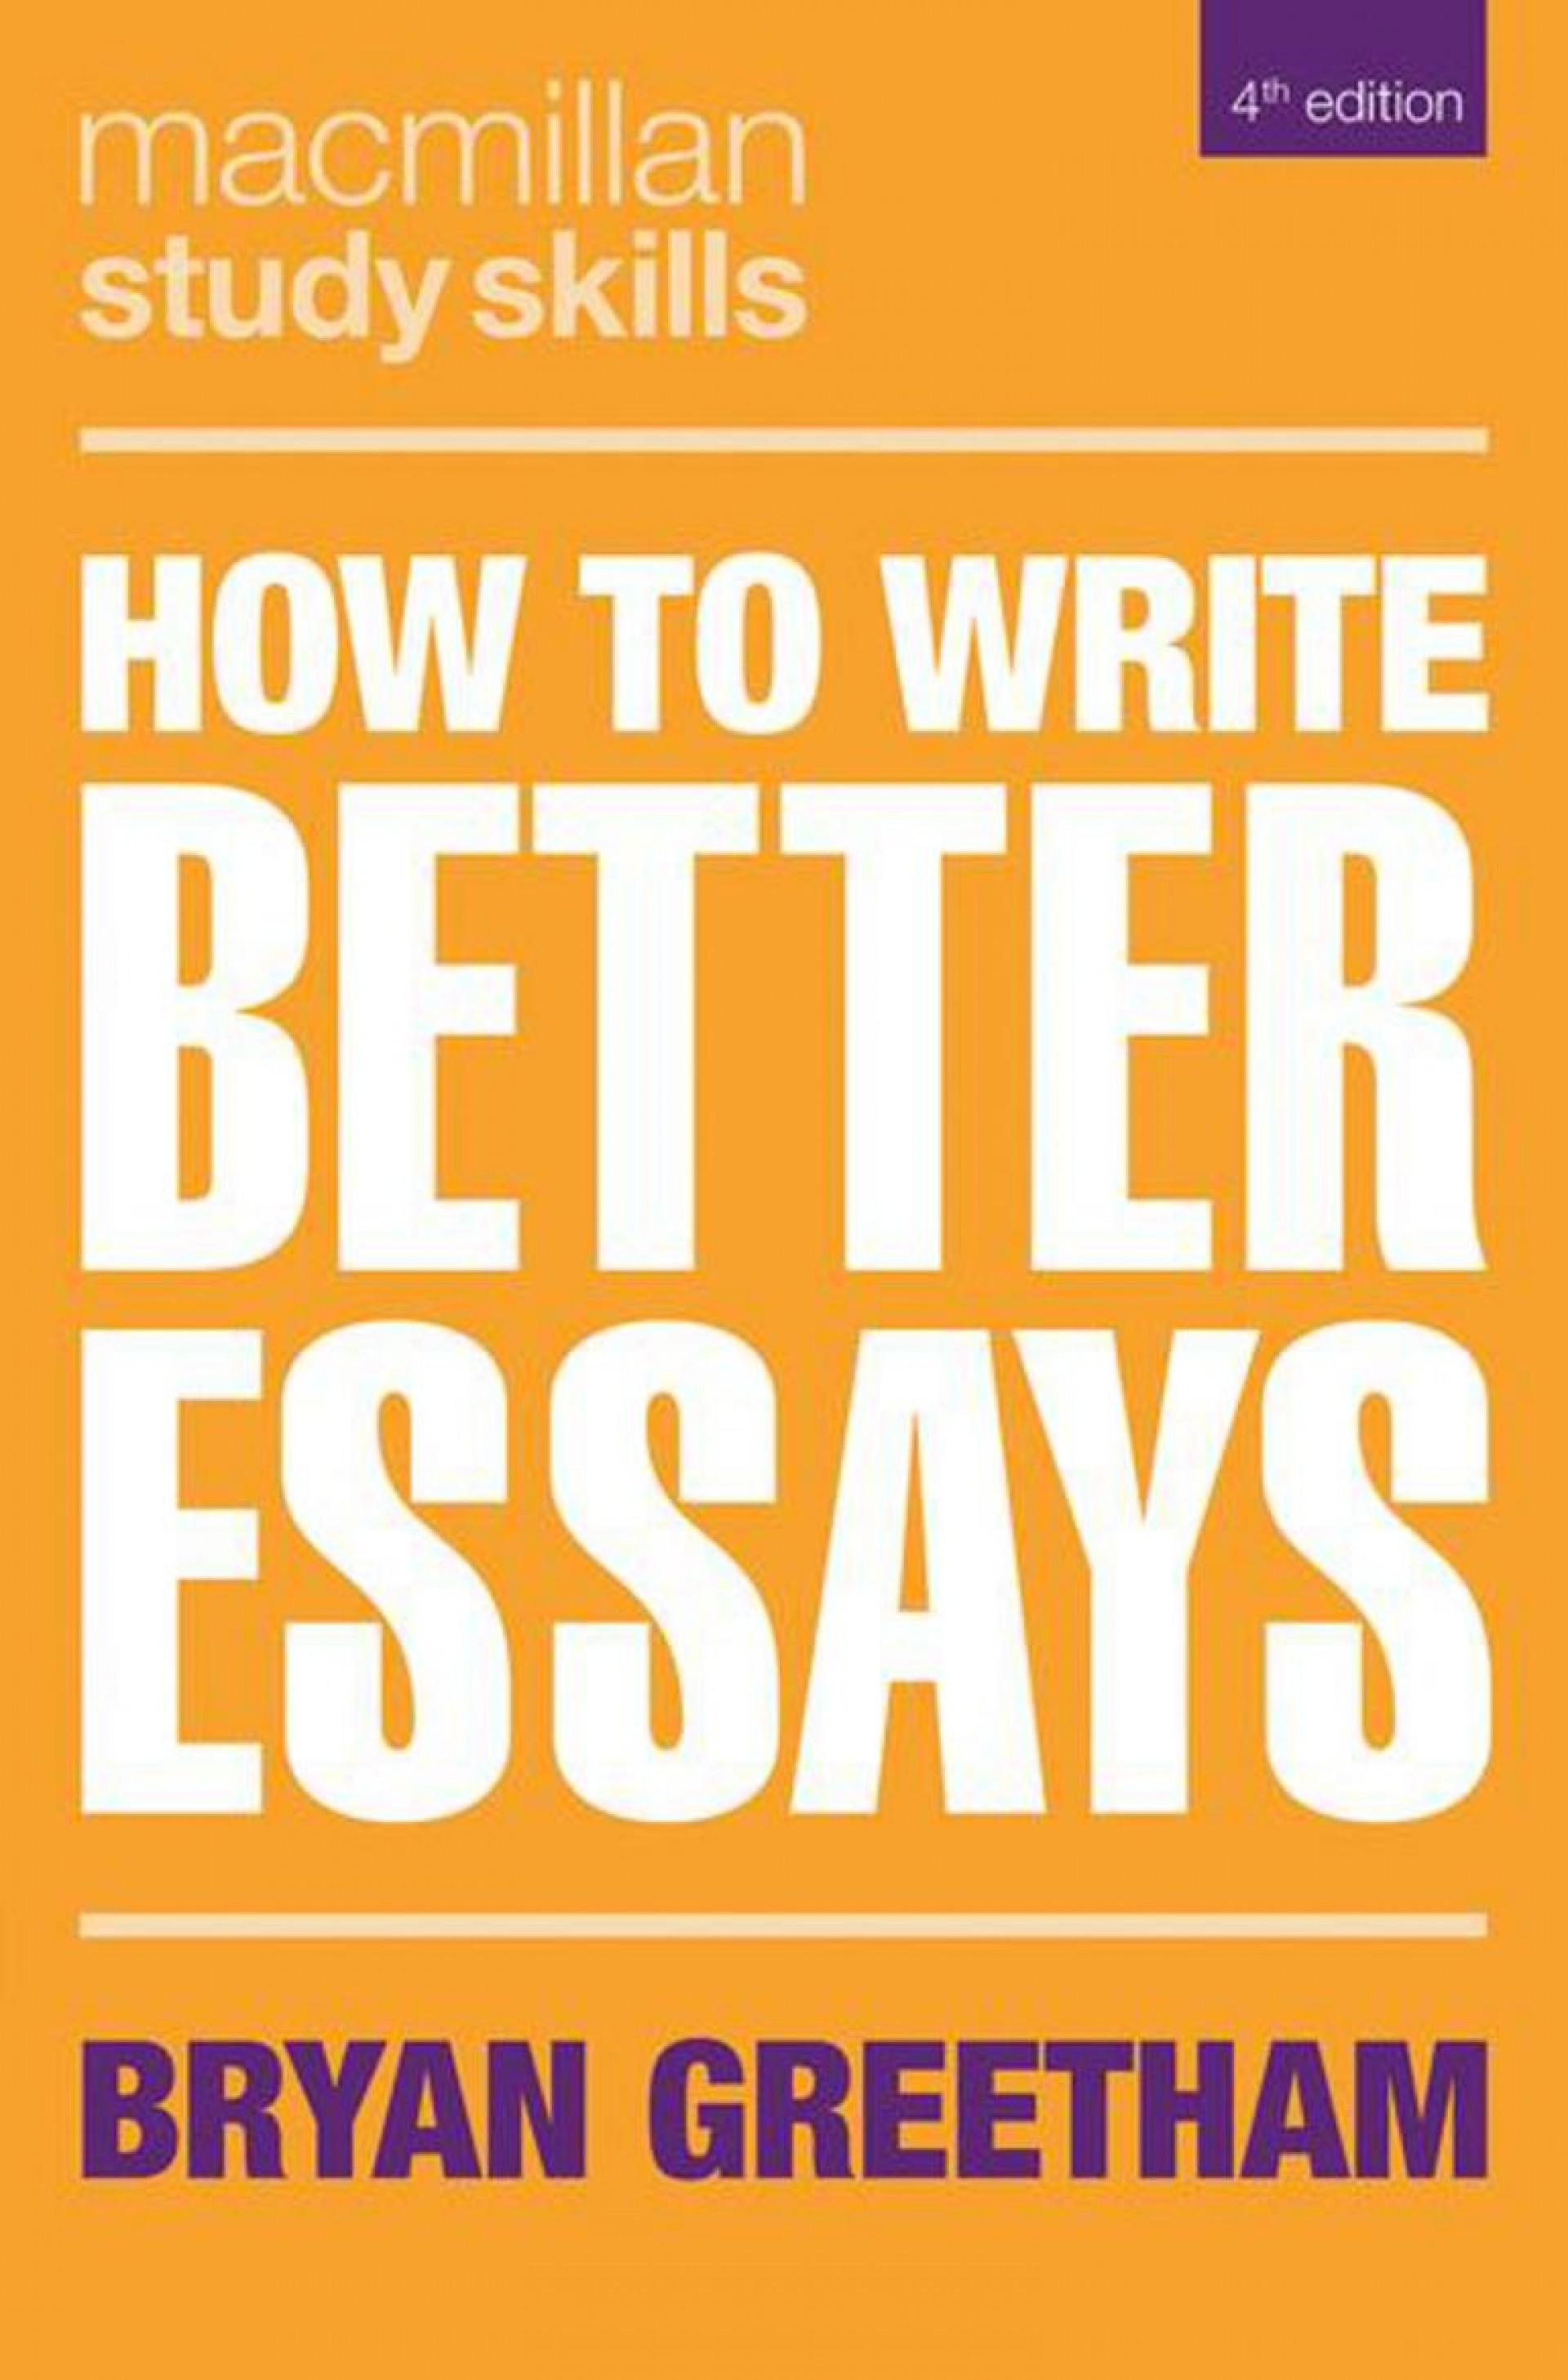 004 How To Write Better Essays Essay Awesome Can I In English Literature Greetham 1920